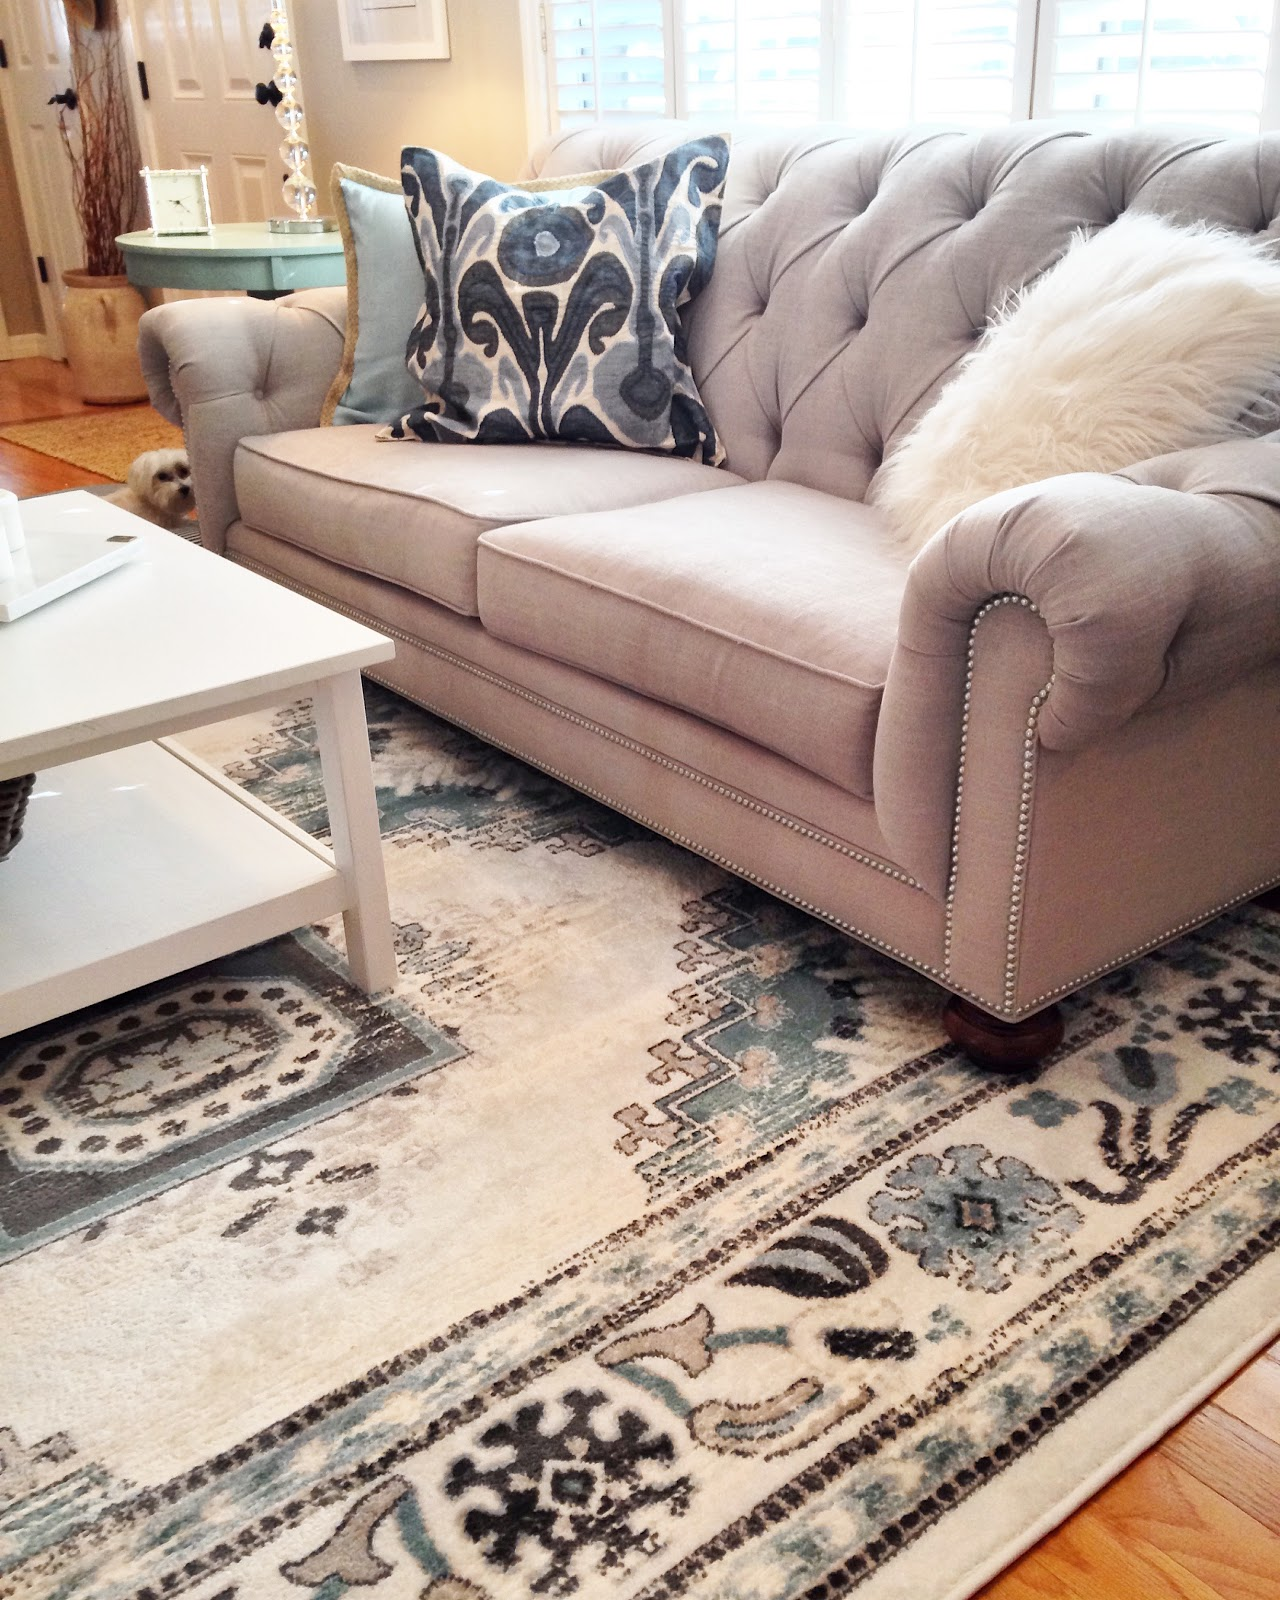 chadwick sofa pet cover with straps the story saturday april 2 2016